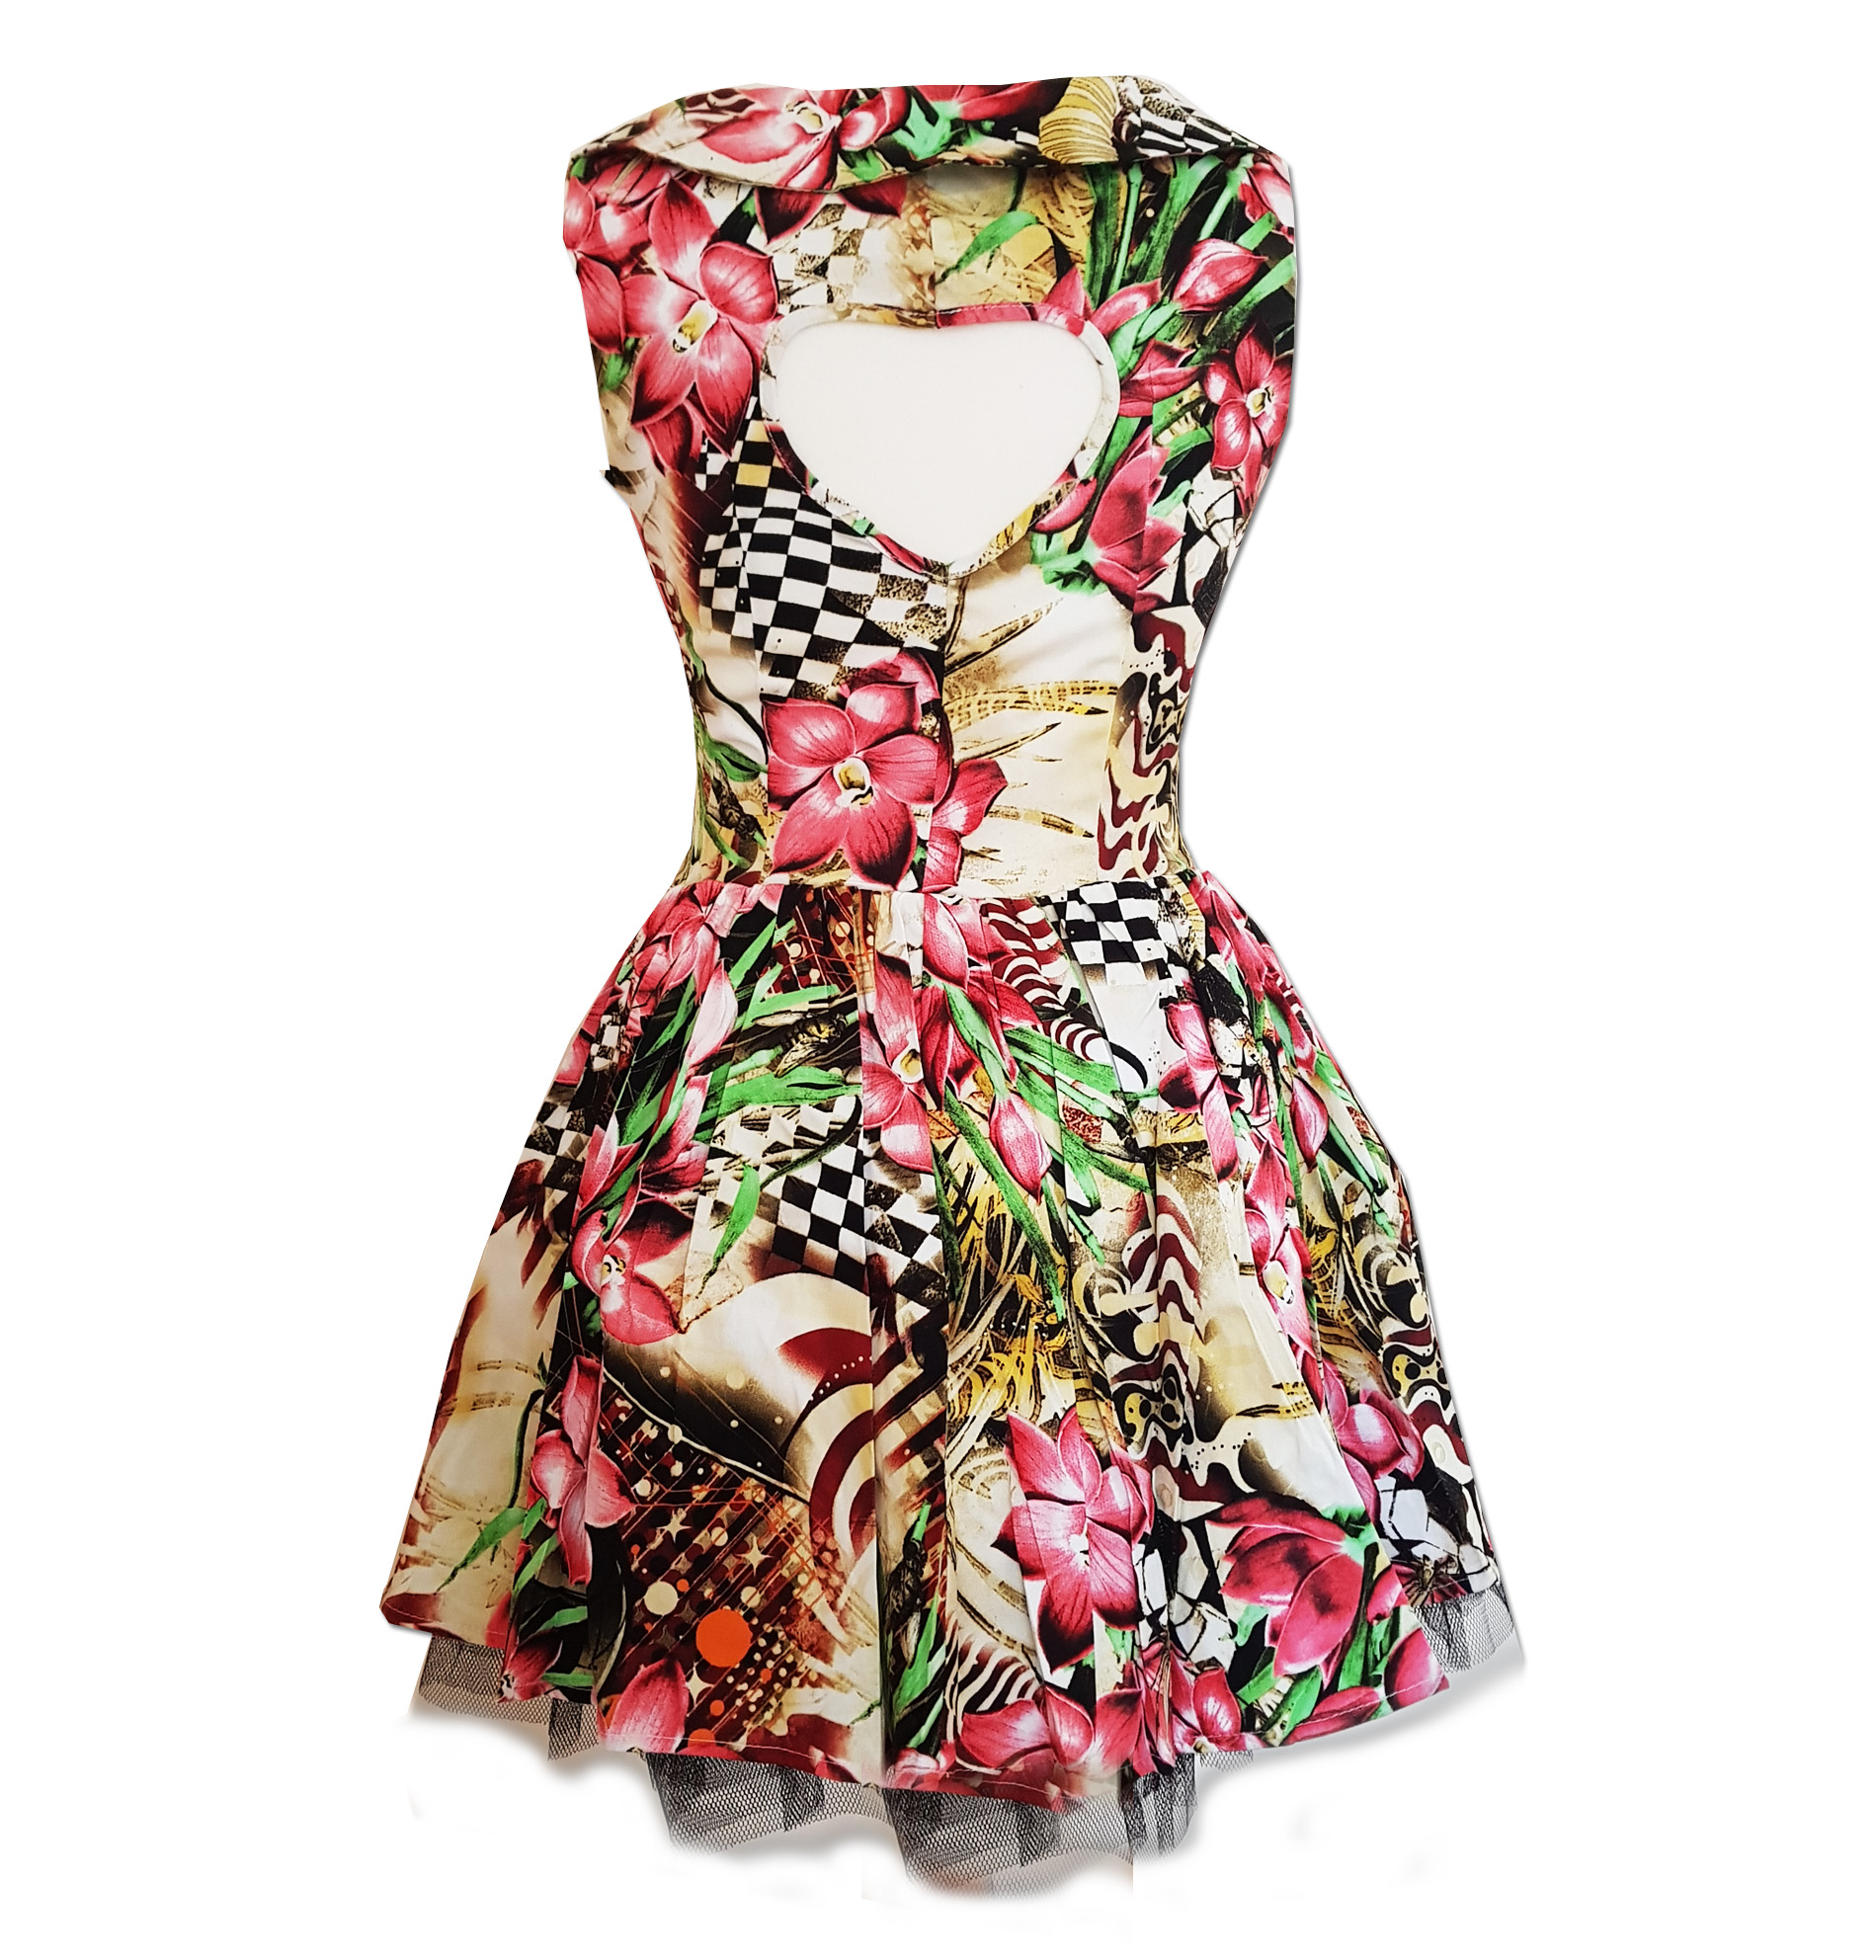 H-amp-R-Hearts-amp-Roses-London-Pink-Mini-Dress-039-Lily-Checkerboard-039-Flowers-All-Sizes thumbnail 13